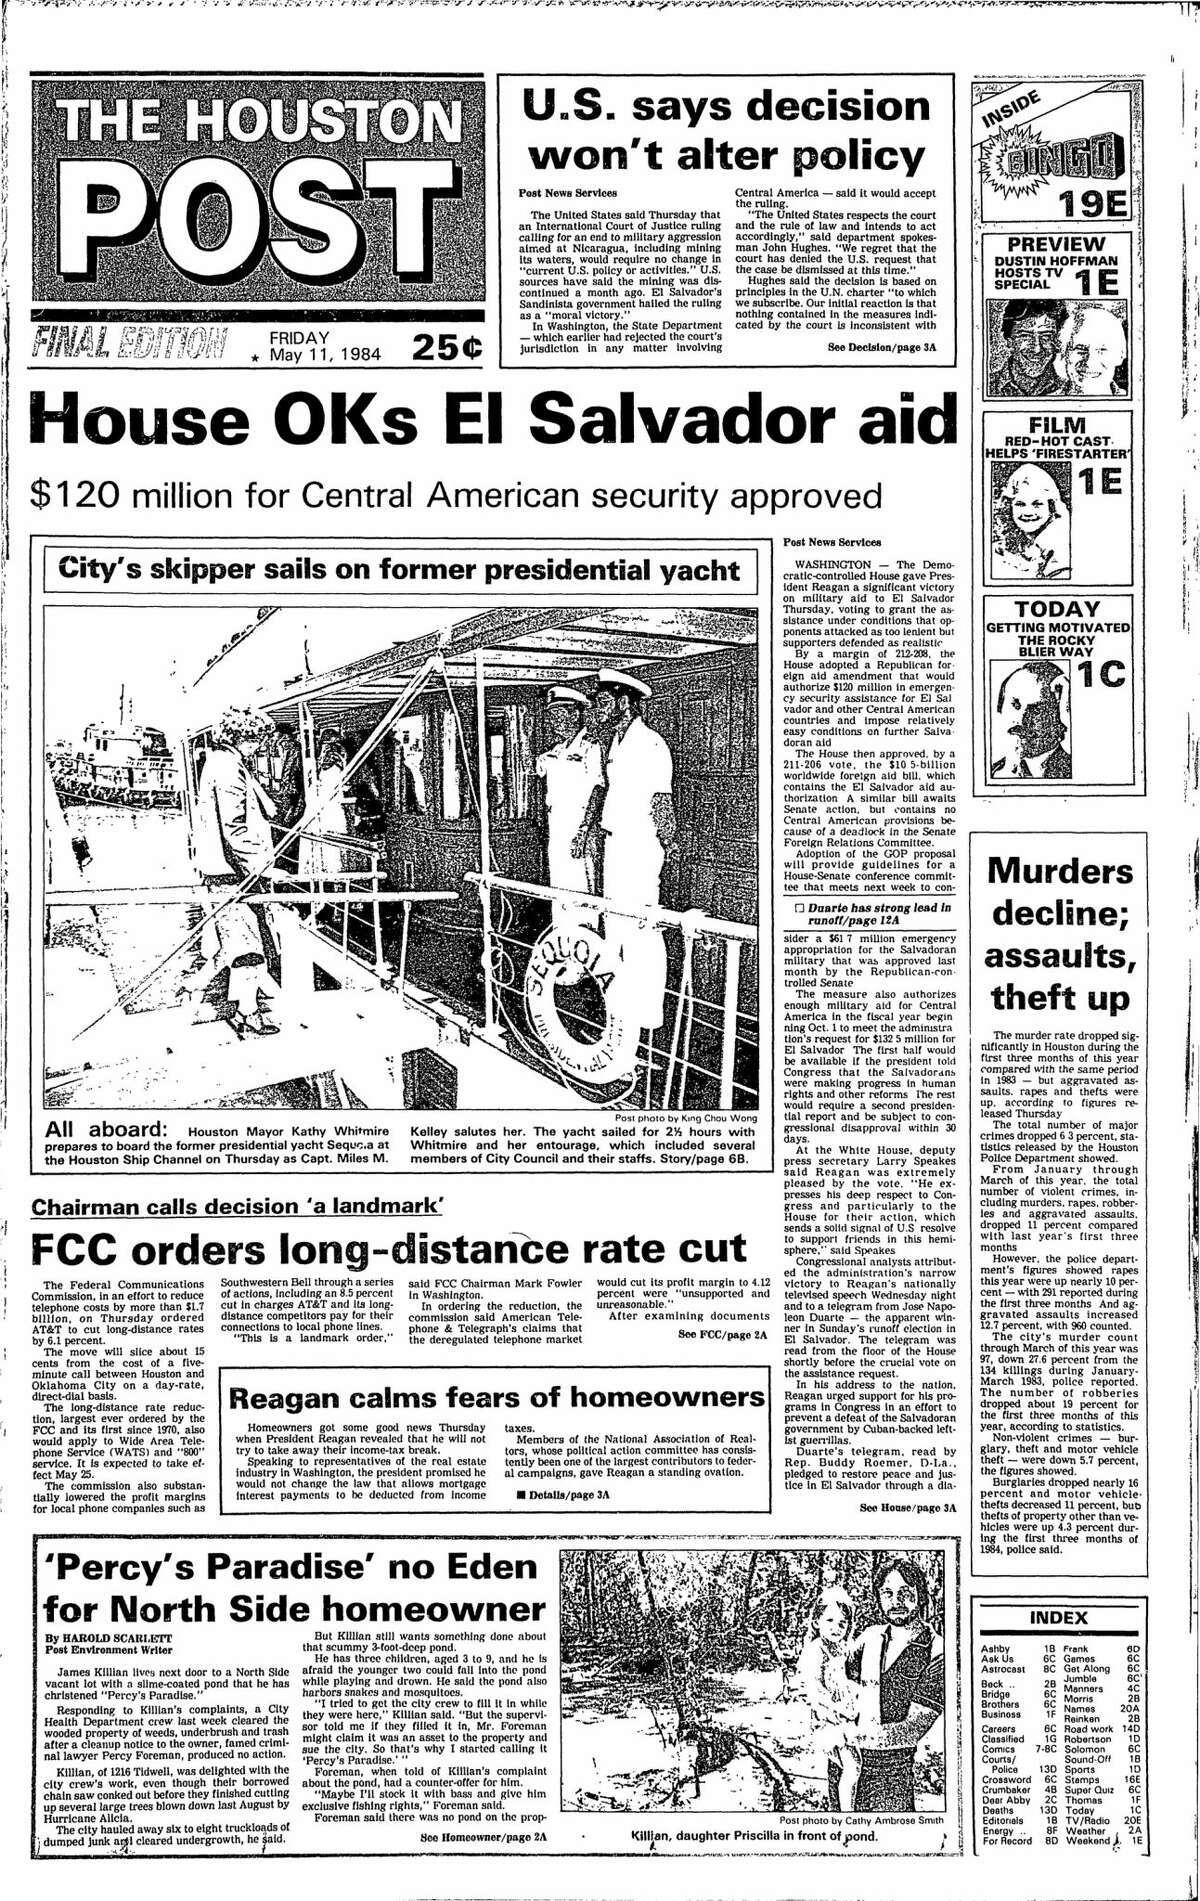 Houston Post from May 11, 1984.